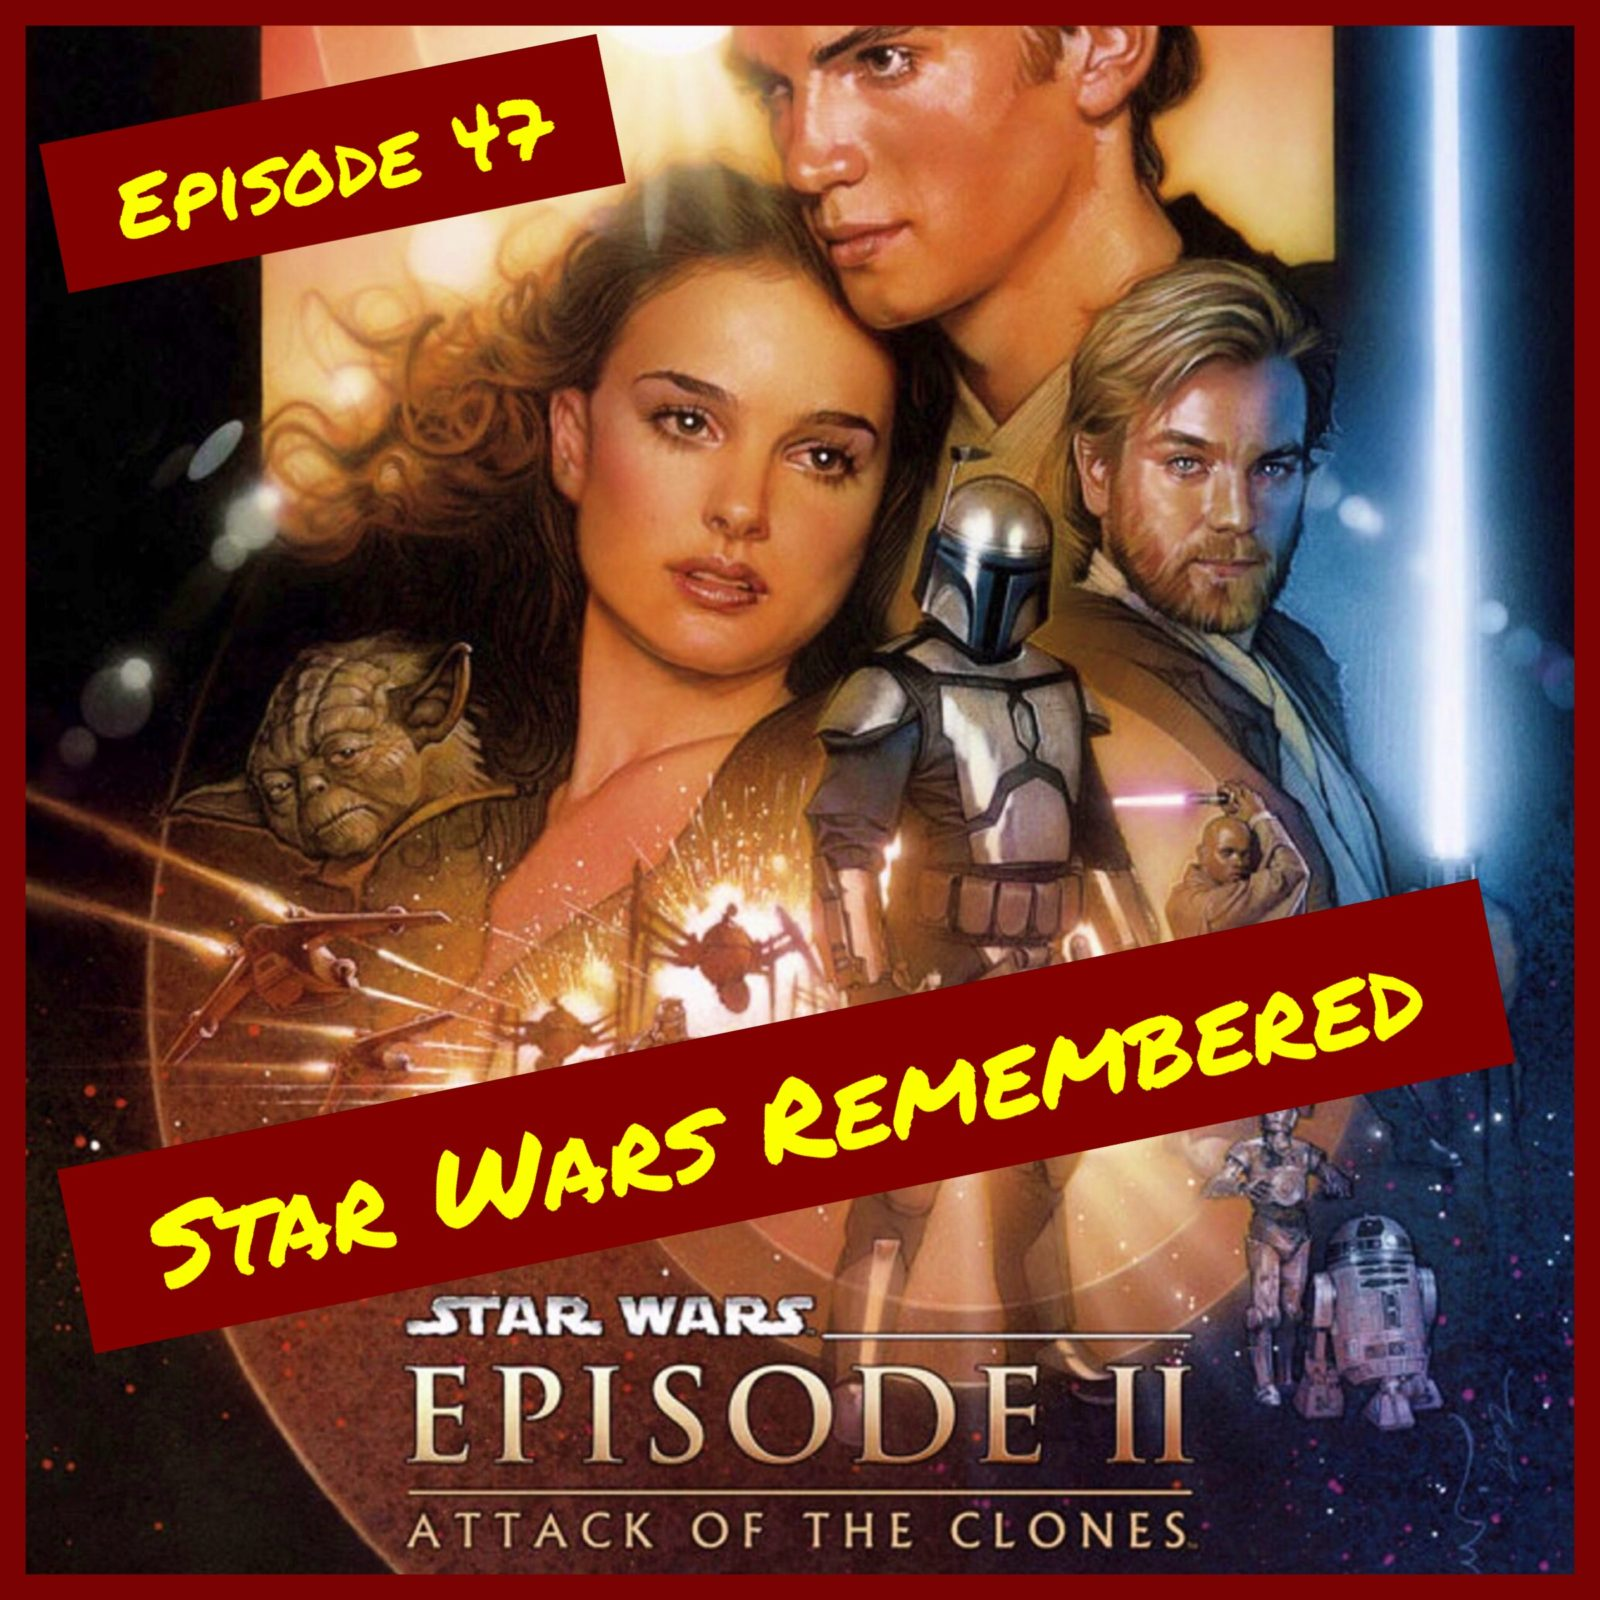 Star Wars Remembered - Episode II - Attack of the Clones